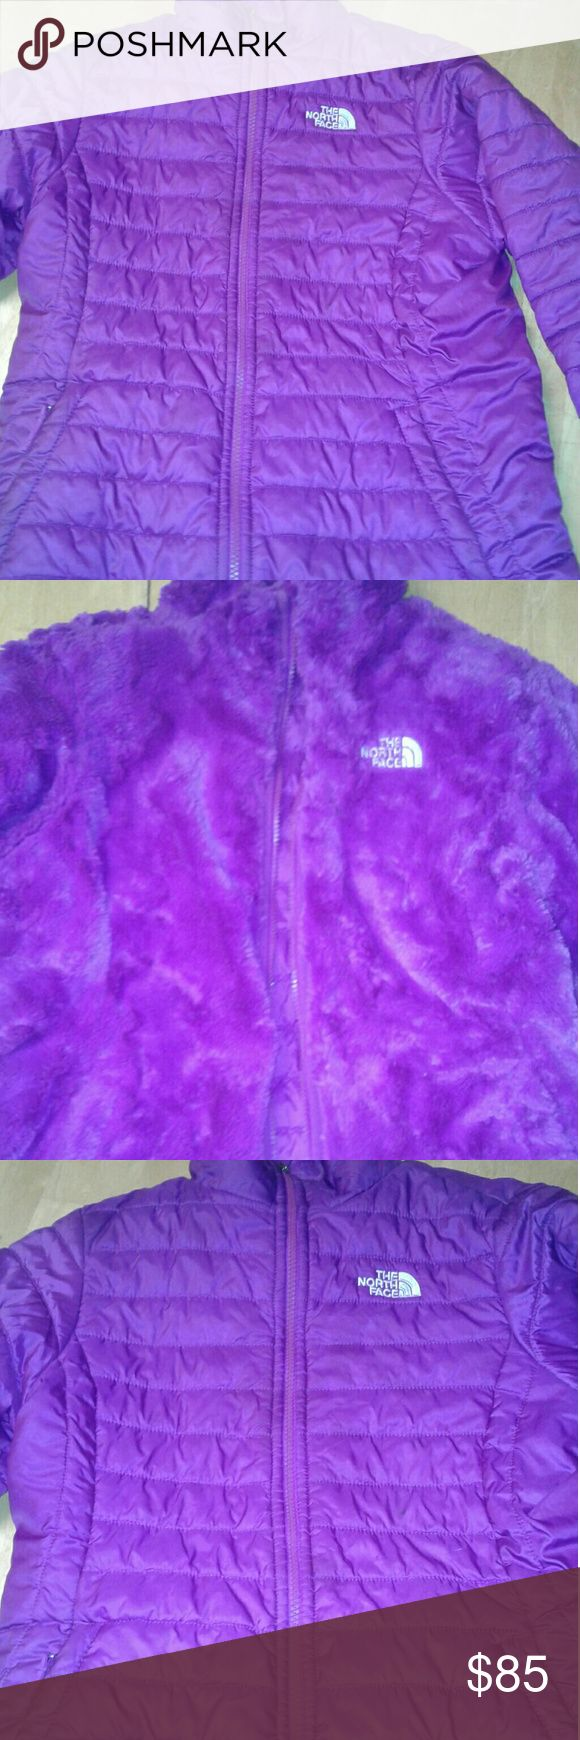 """Kids Reversible North Face Purple North Face. Reversible. One side is incredibly warm and fuzzy, the other size is normal """"jacket"""" type material, the non fuzzy size has a very small black mark, not noticable at all while on. The fuzzy side is completely flawless. This jacket is girls size 14/16 fits a womans xs/small North Face Jackets & Coats"""